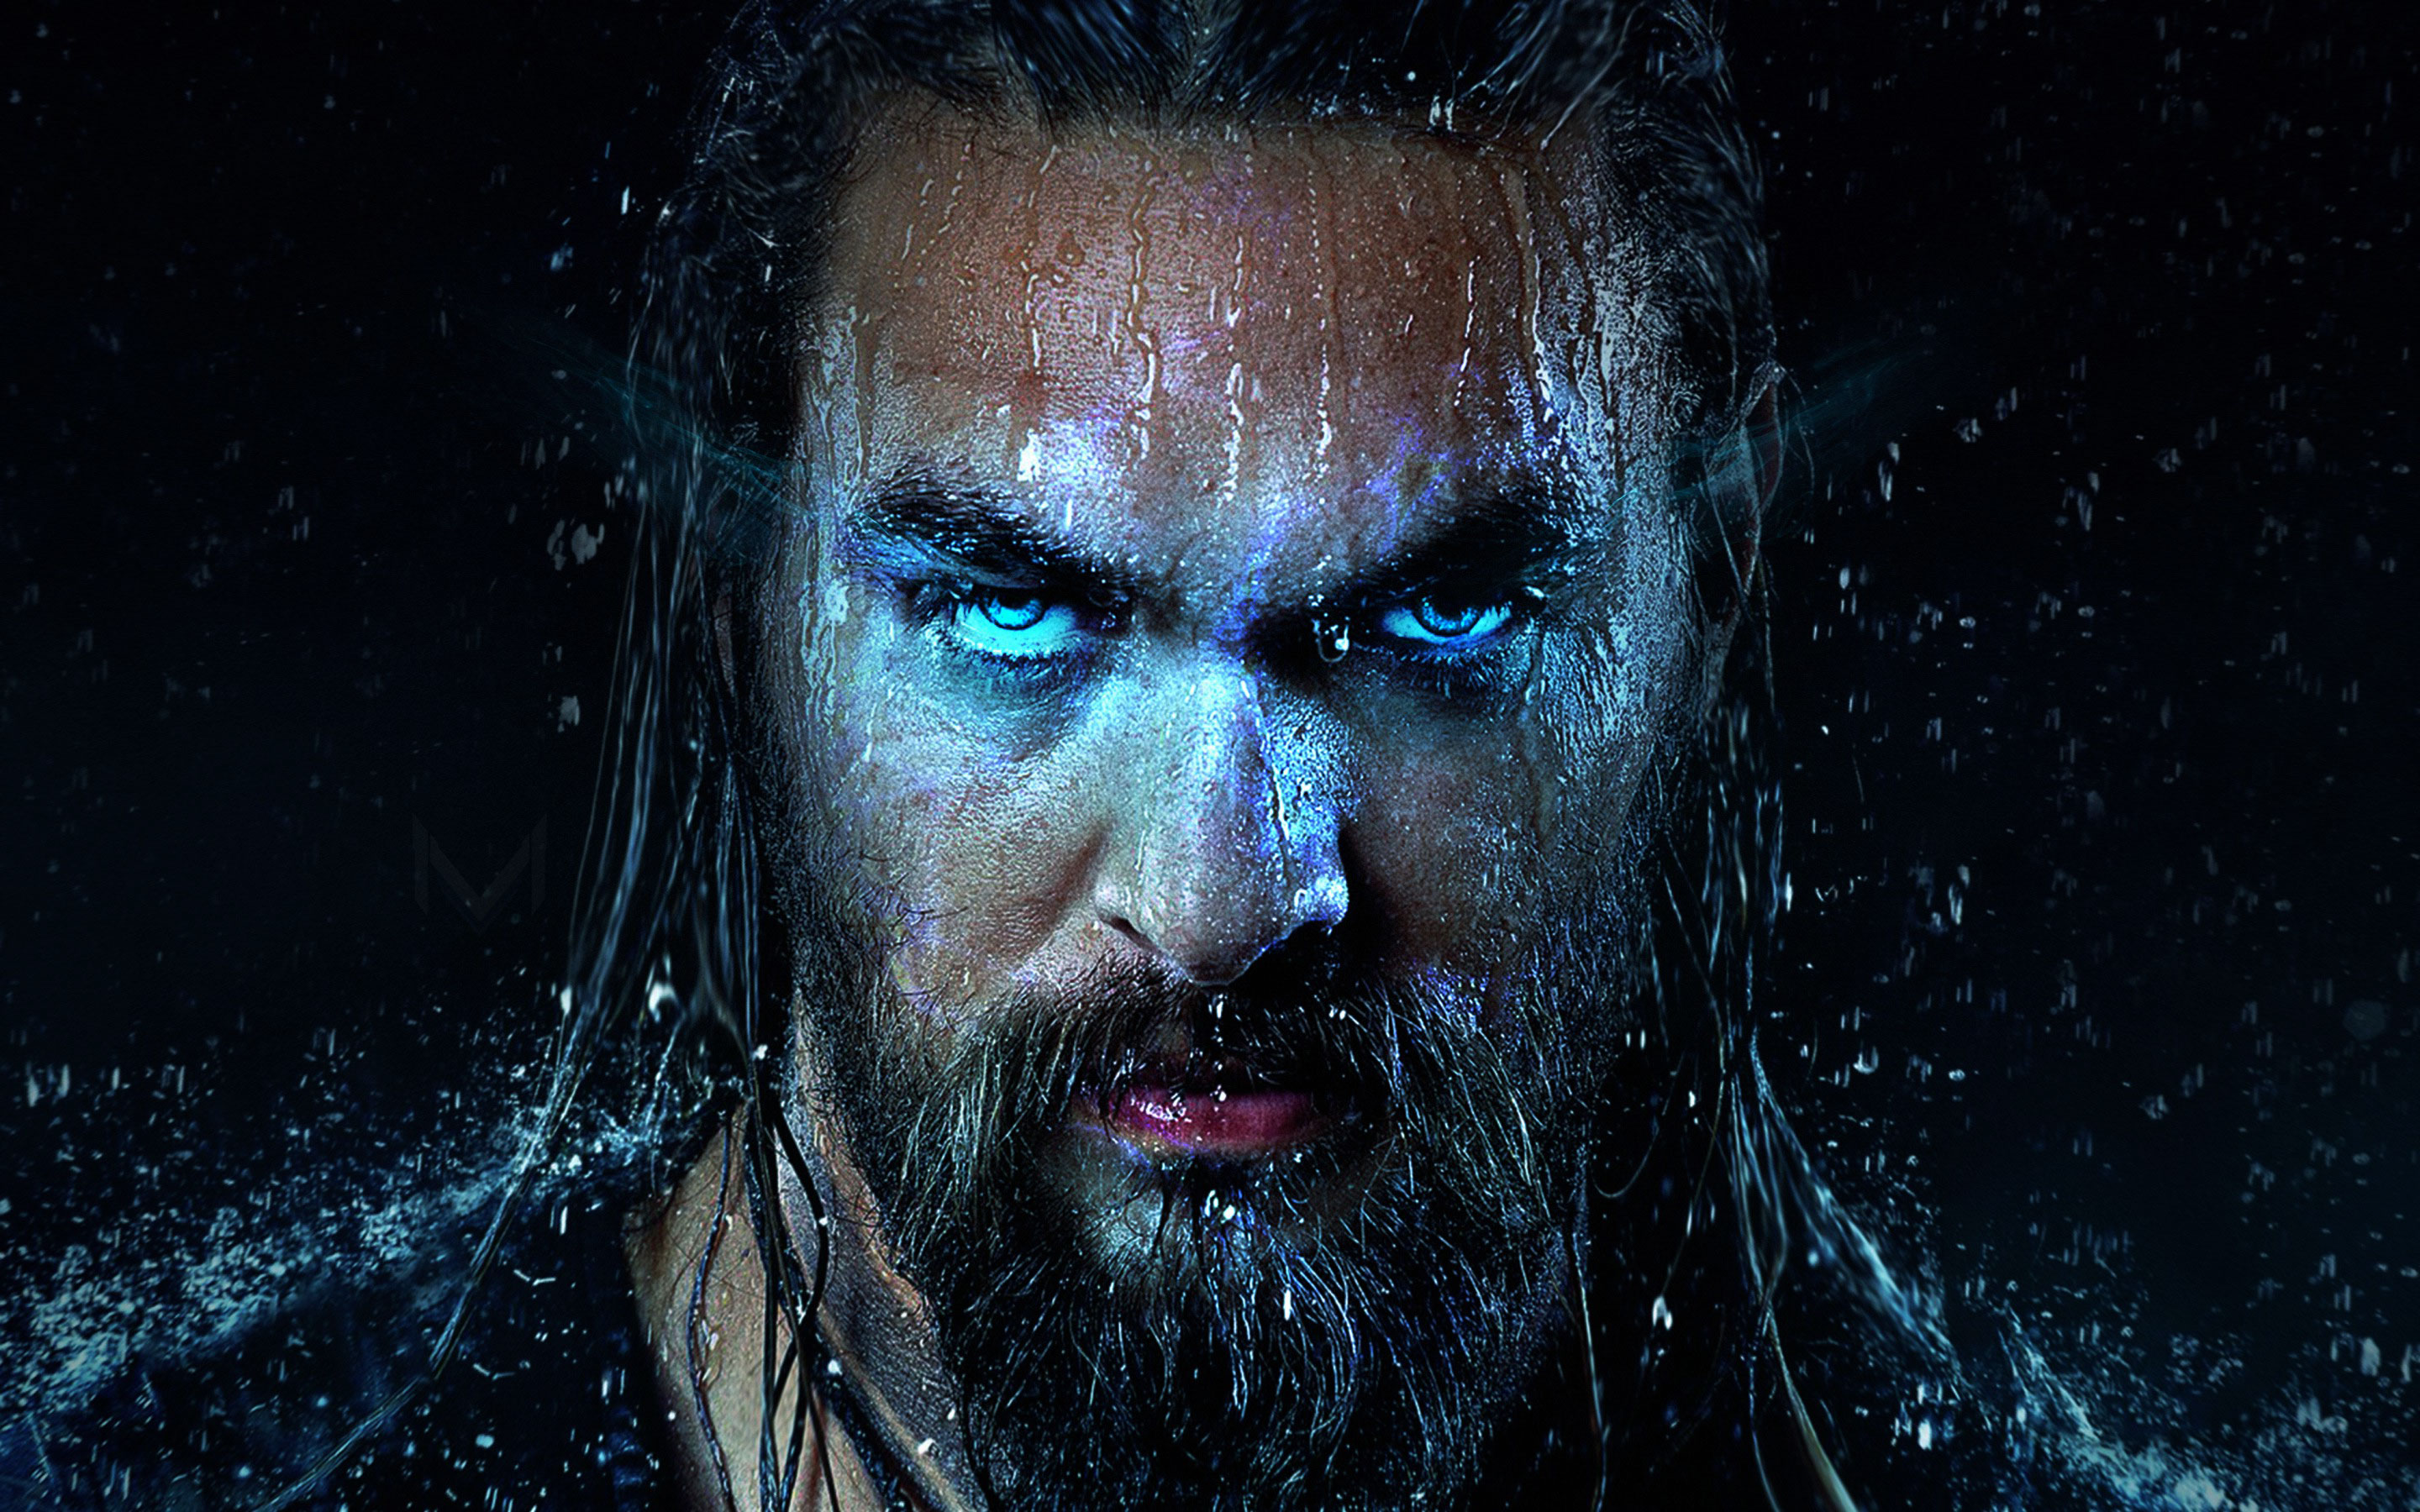 aquaman face hd wallpaper 66170